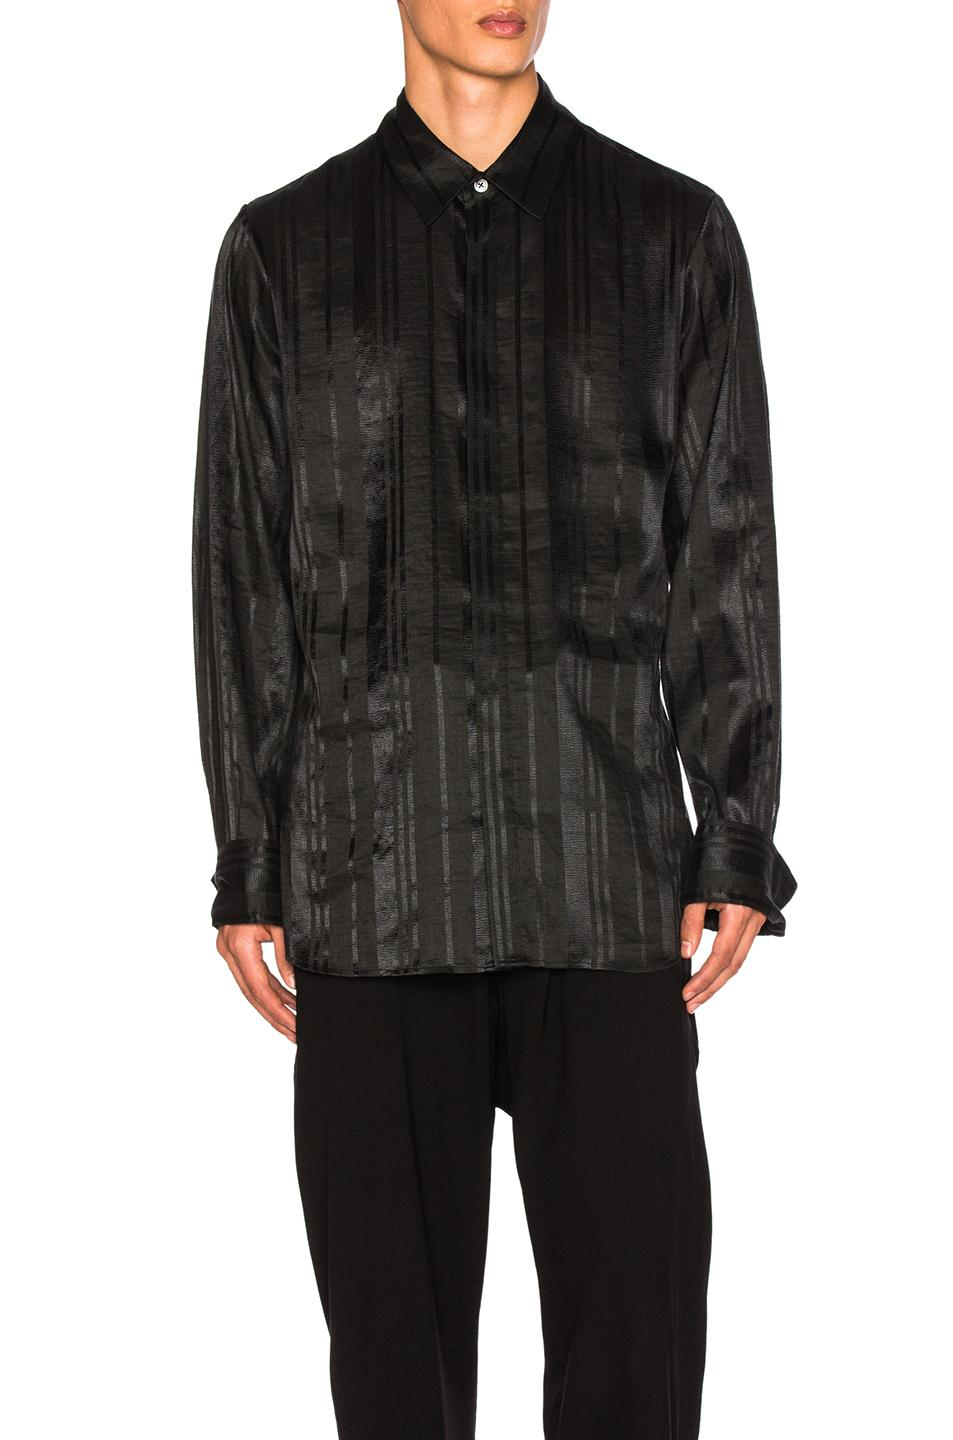 Ann demeulemeester tie back shirt in black for men lyst for How to make a tie back shirt